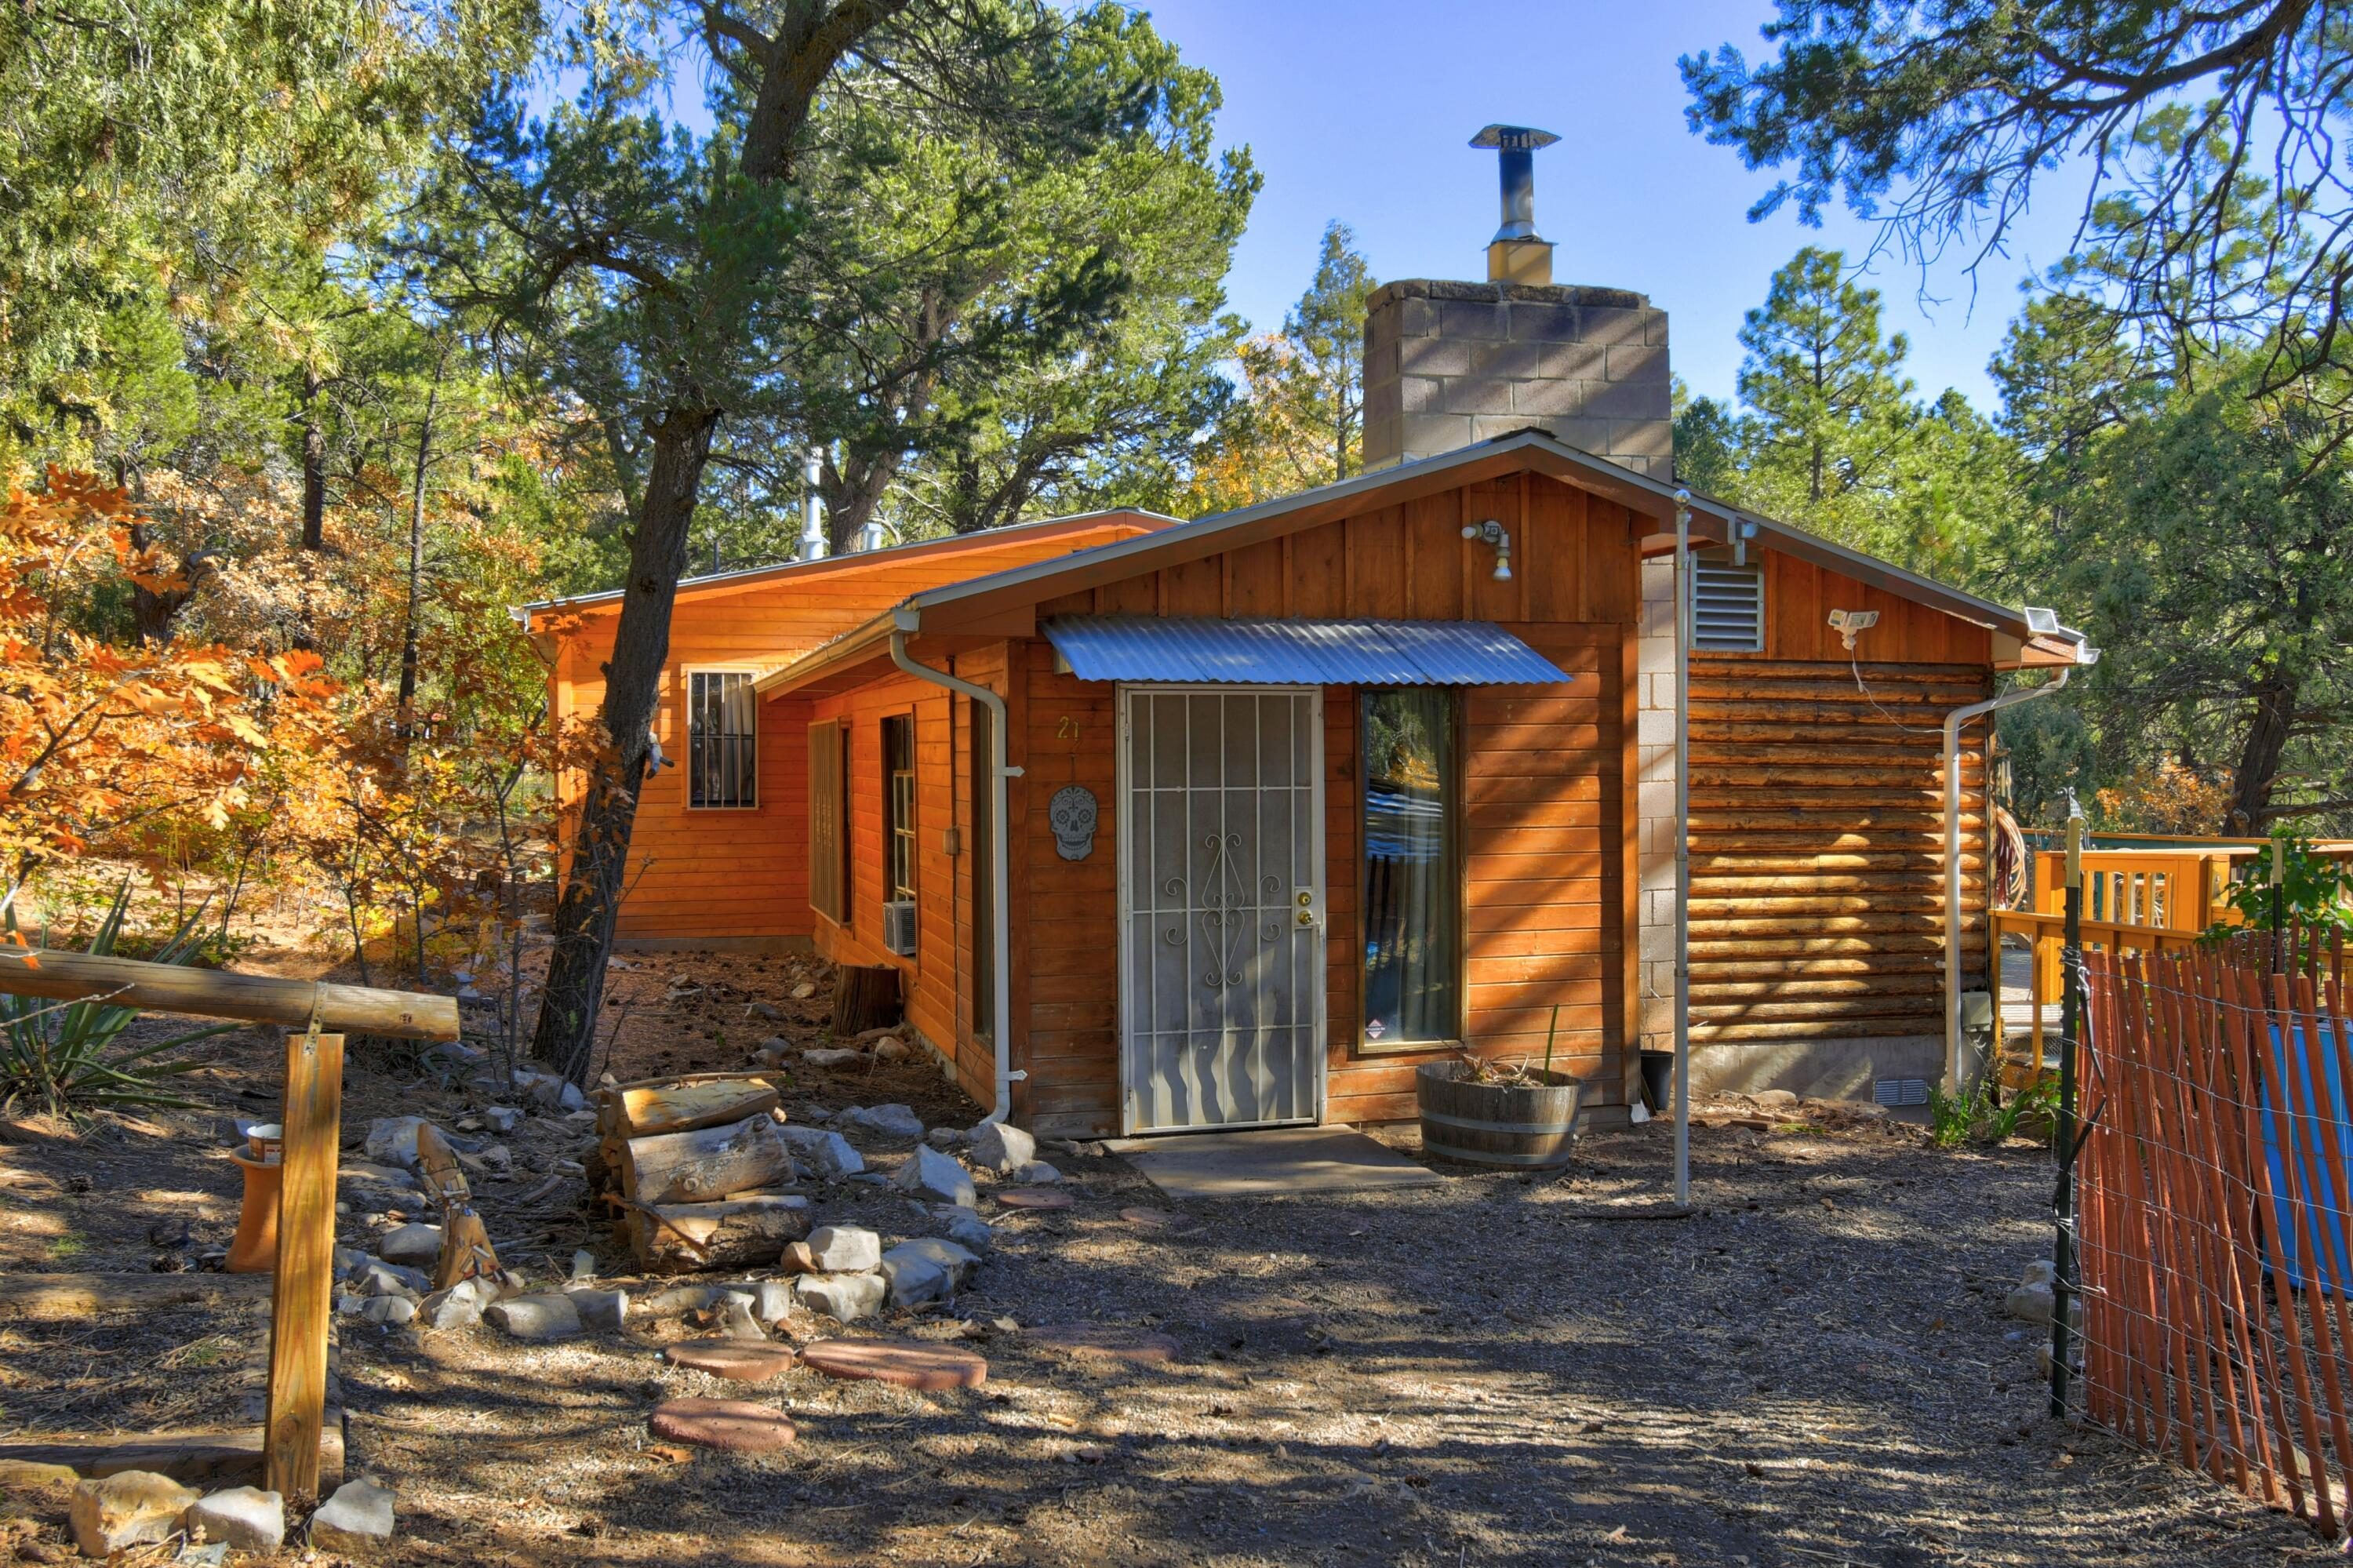 The cutest little cabin in the woods! Wood burning fireplace. Jetted tub. View deck off the back provides a lovely place to enjoy your morning coffee. Upgrades include  electrical, furnace, plumbing, flooring, security wrought iron, siding, soffit, siding, roof gutters and foundation under deck.